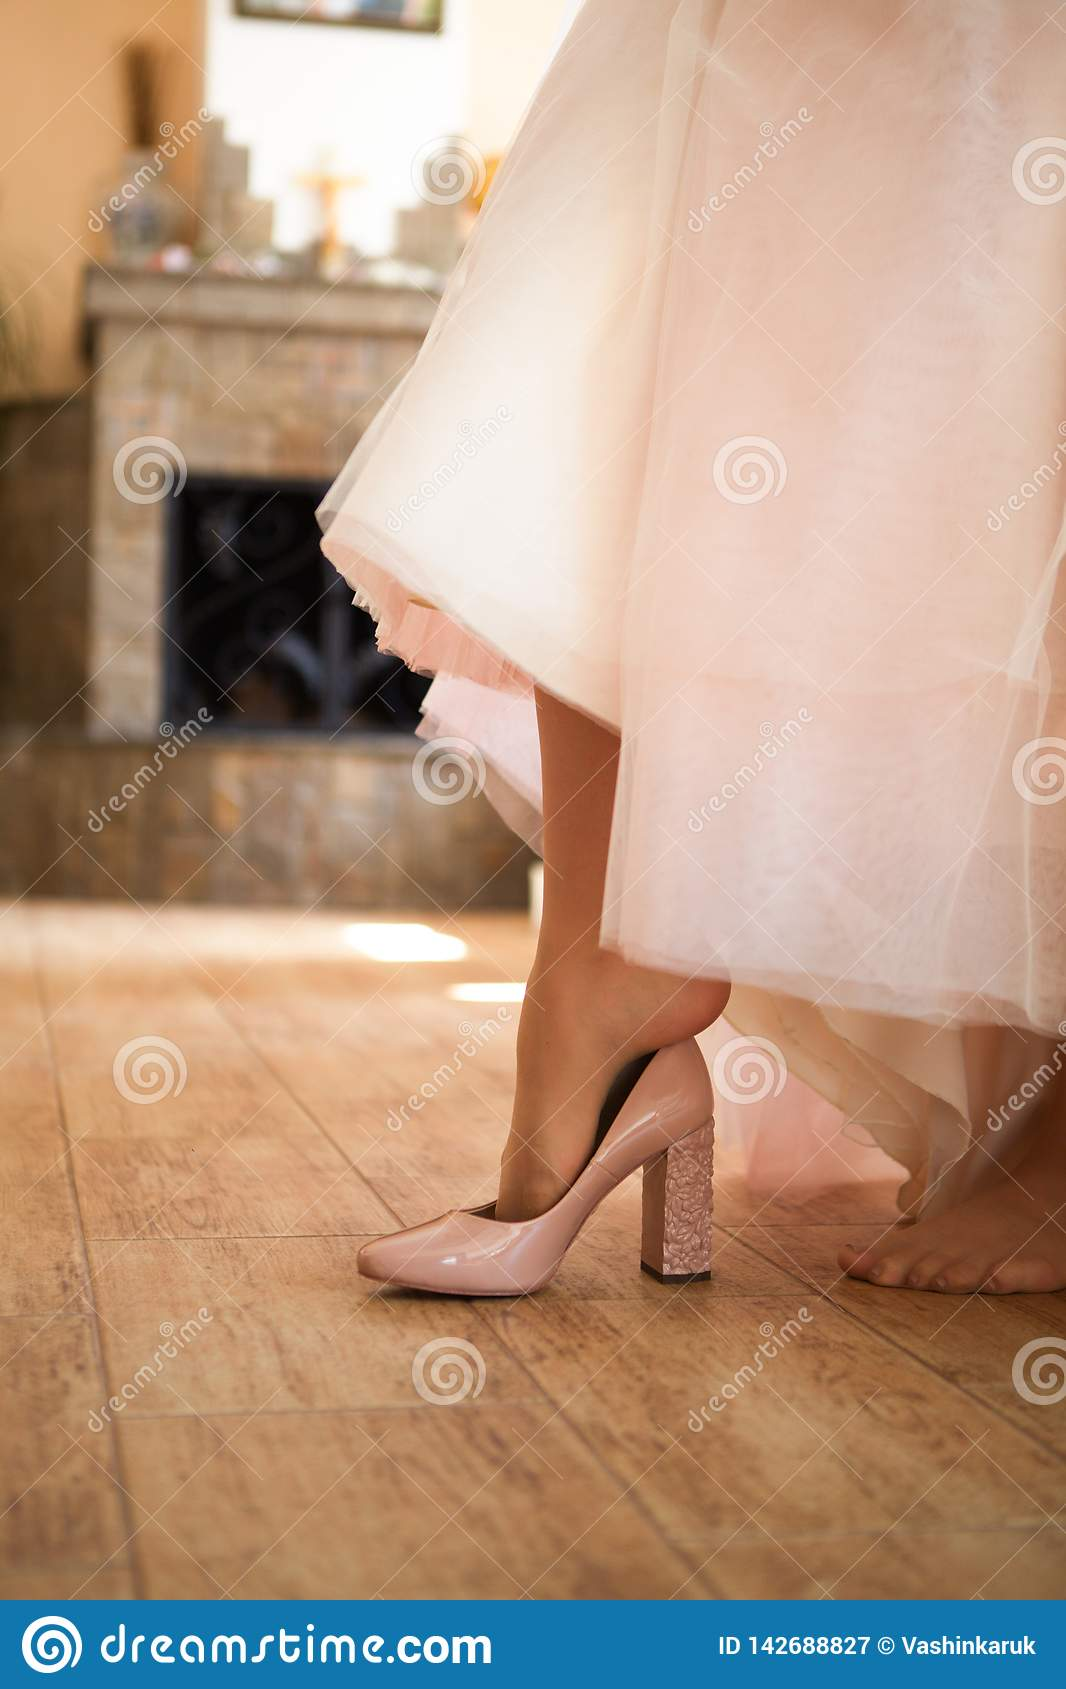 Legs in ivory wedding shoes